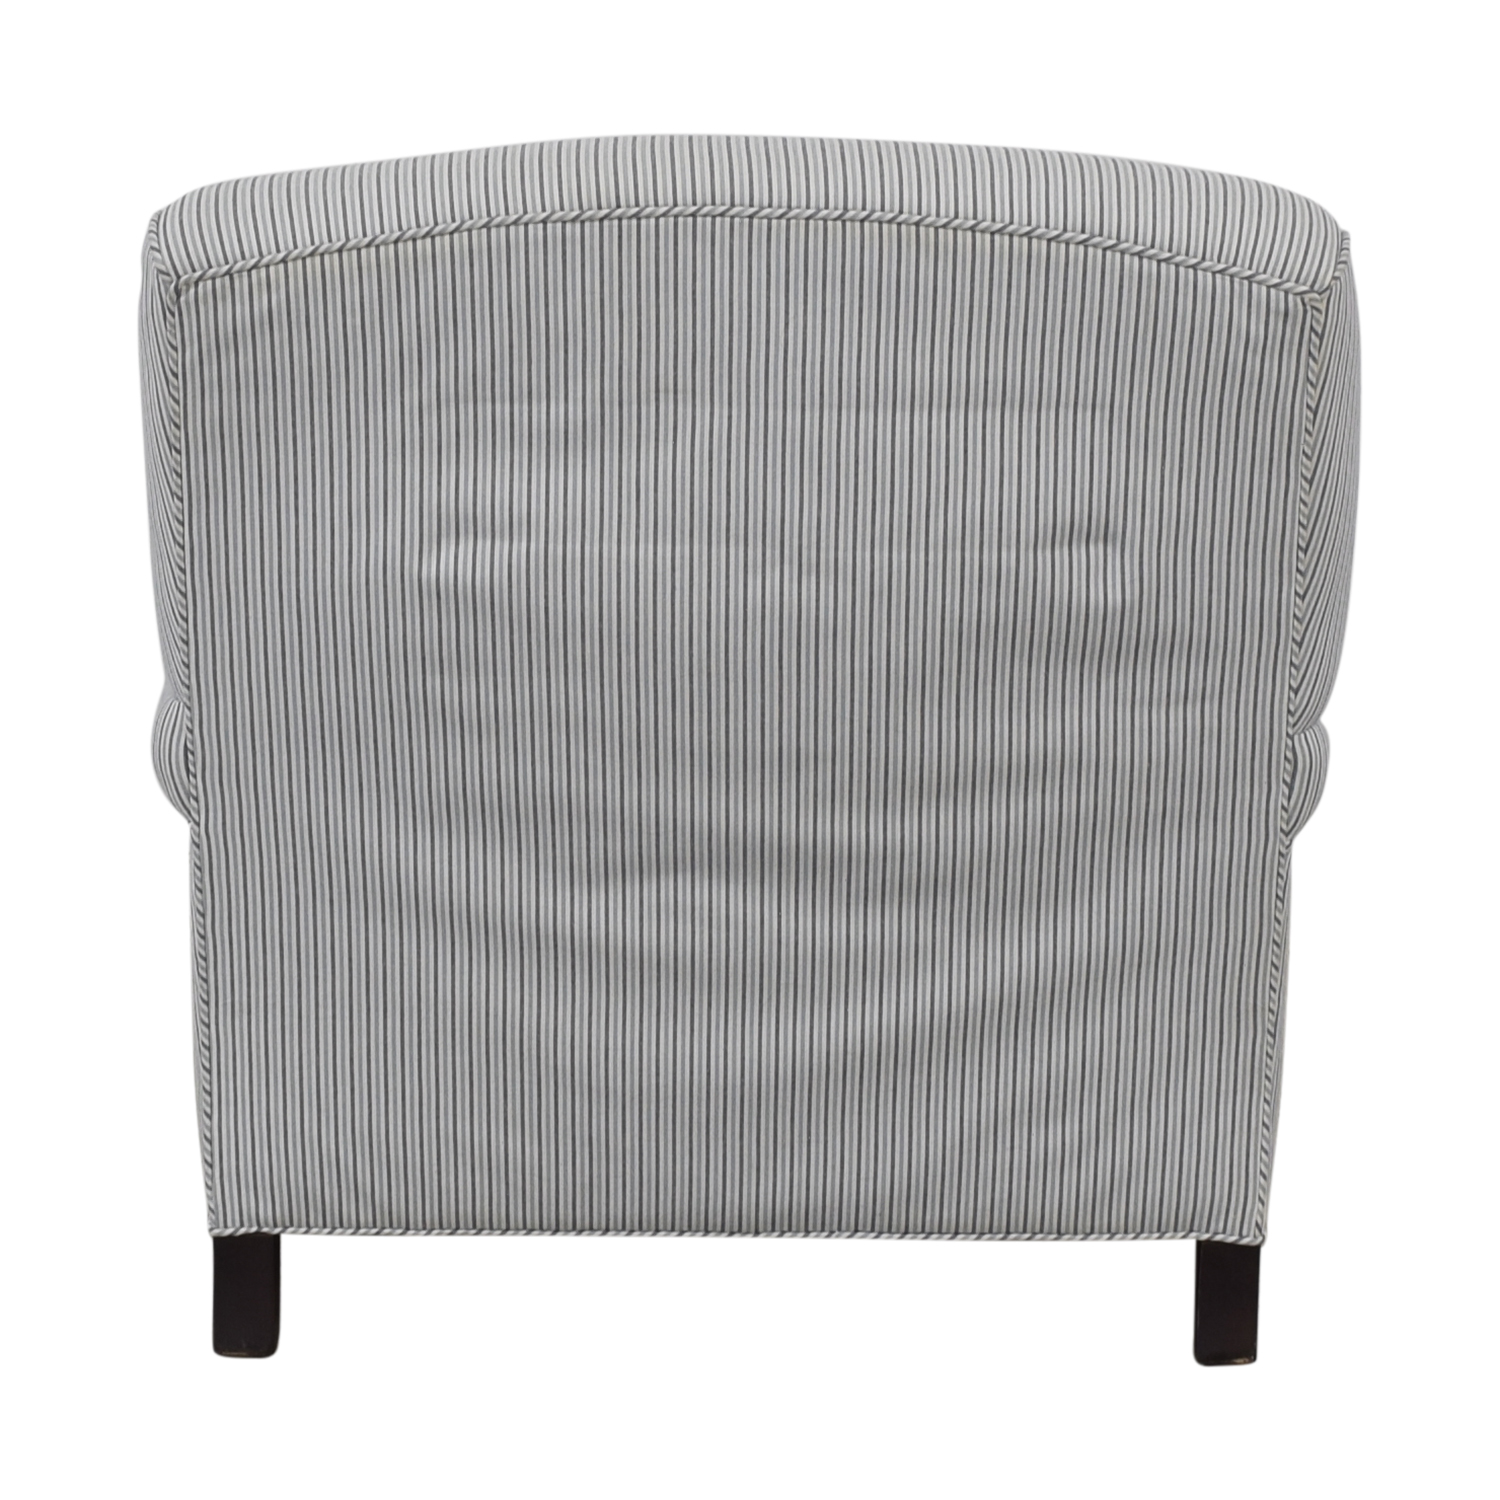 Serena & Lily Miramar Upholstered Side Chair / Chairs